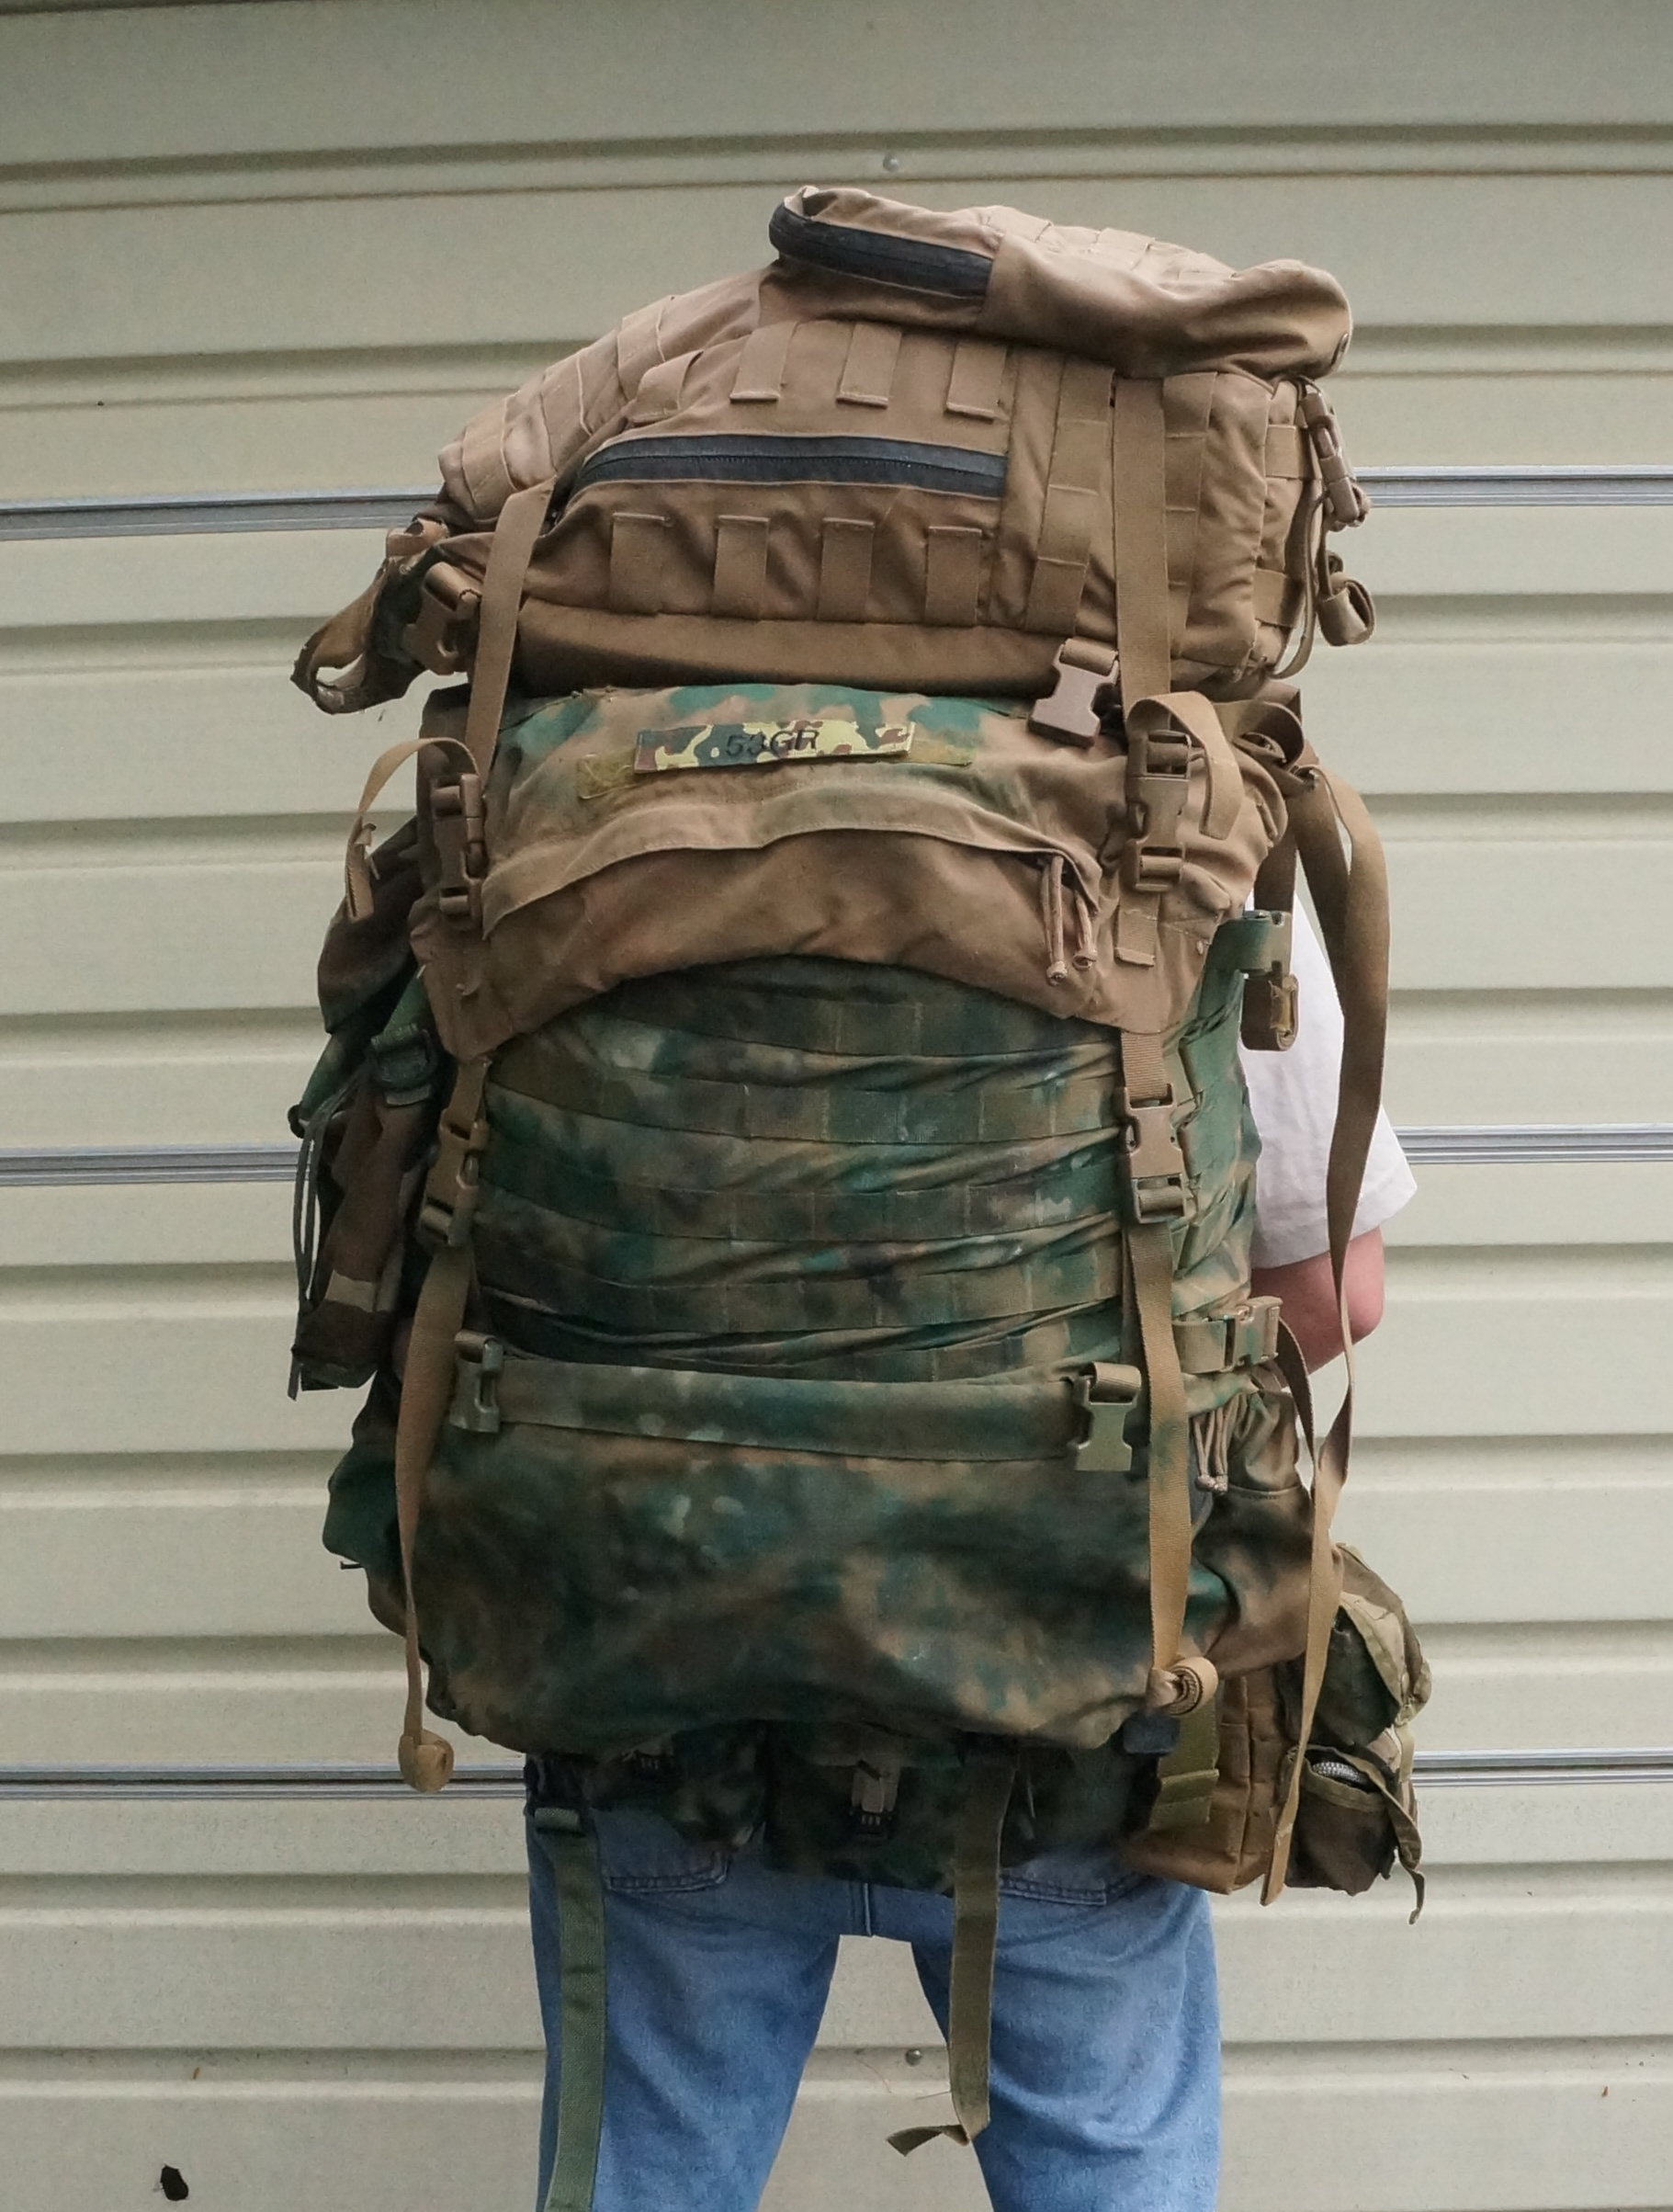 devilcat with a filbe assault pack clipped on top